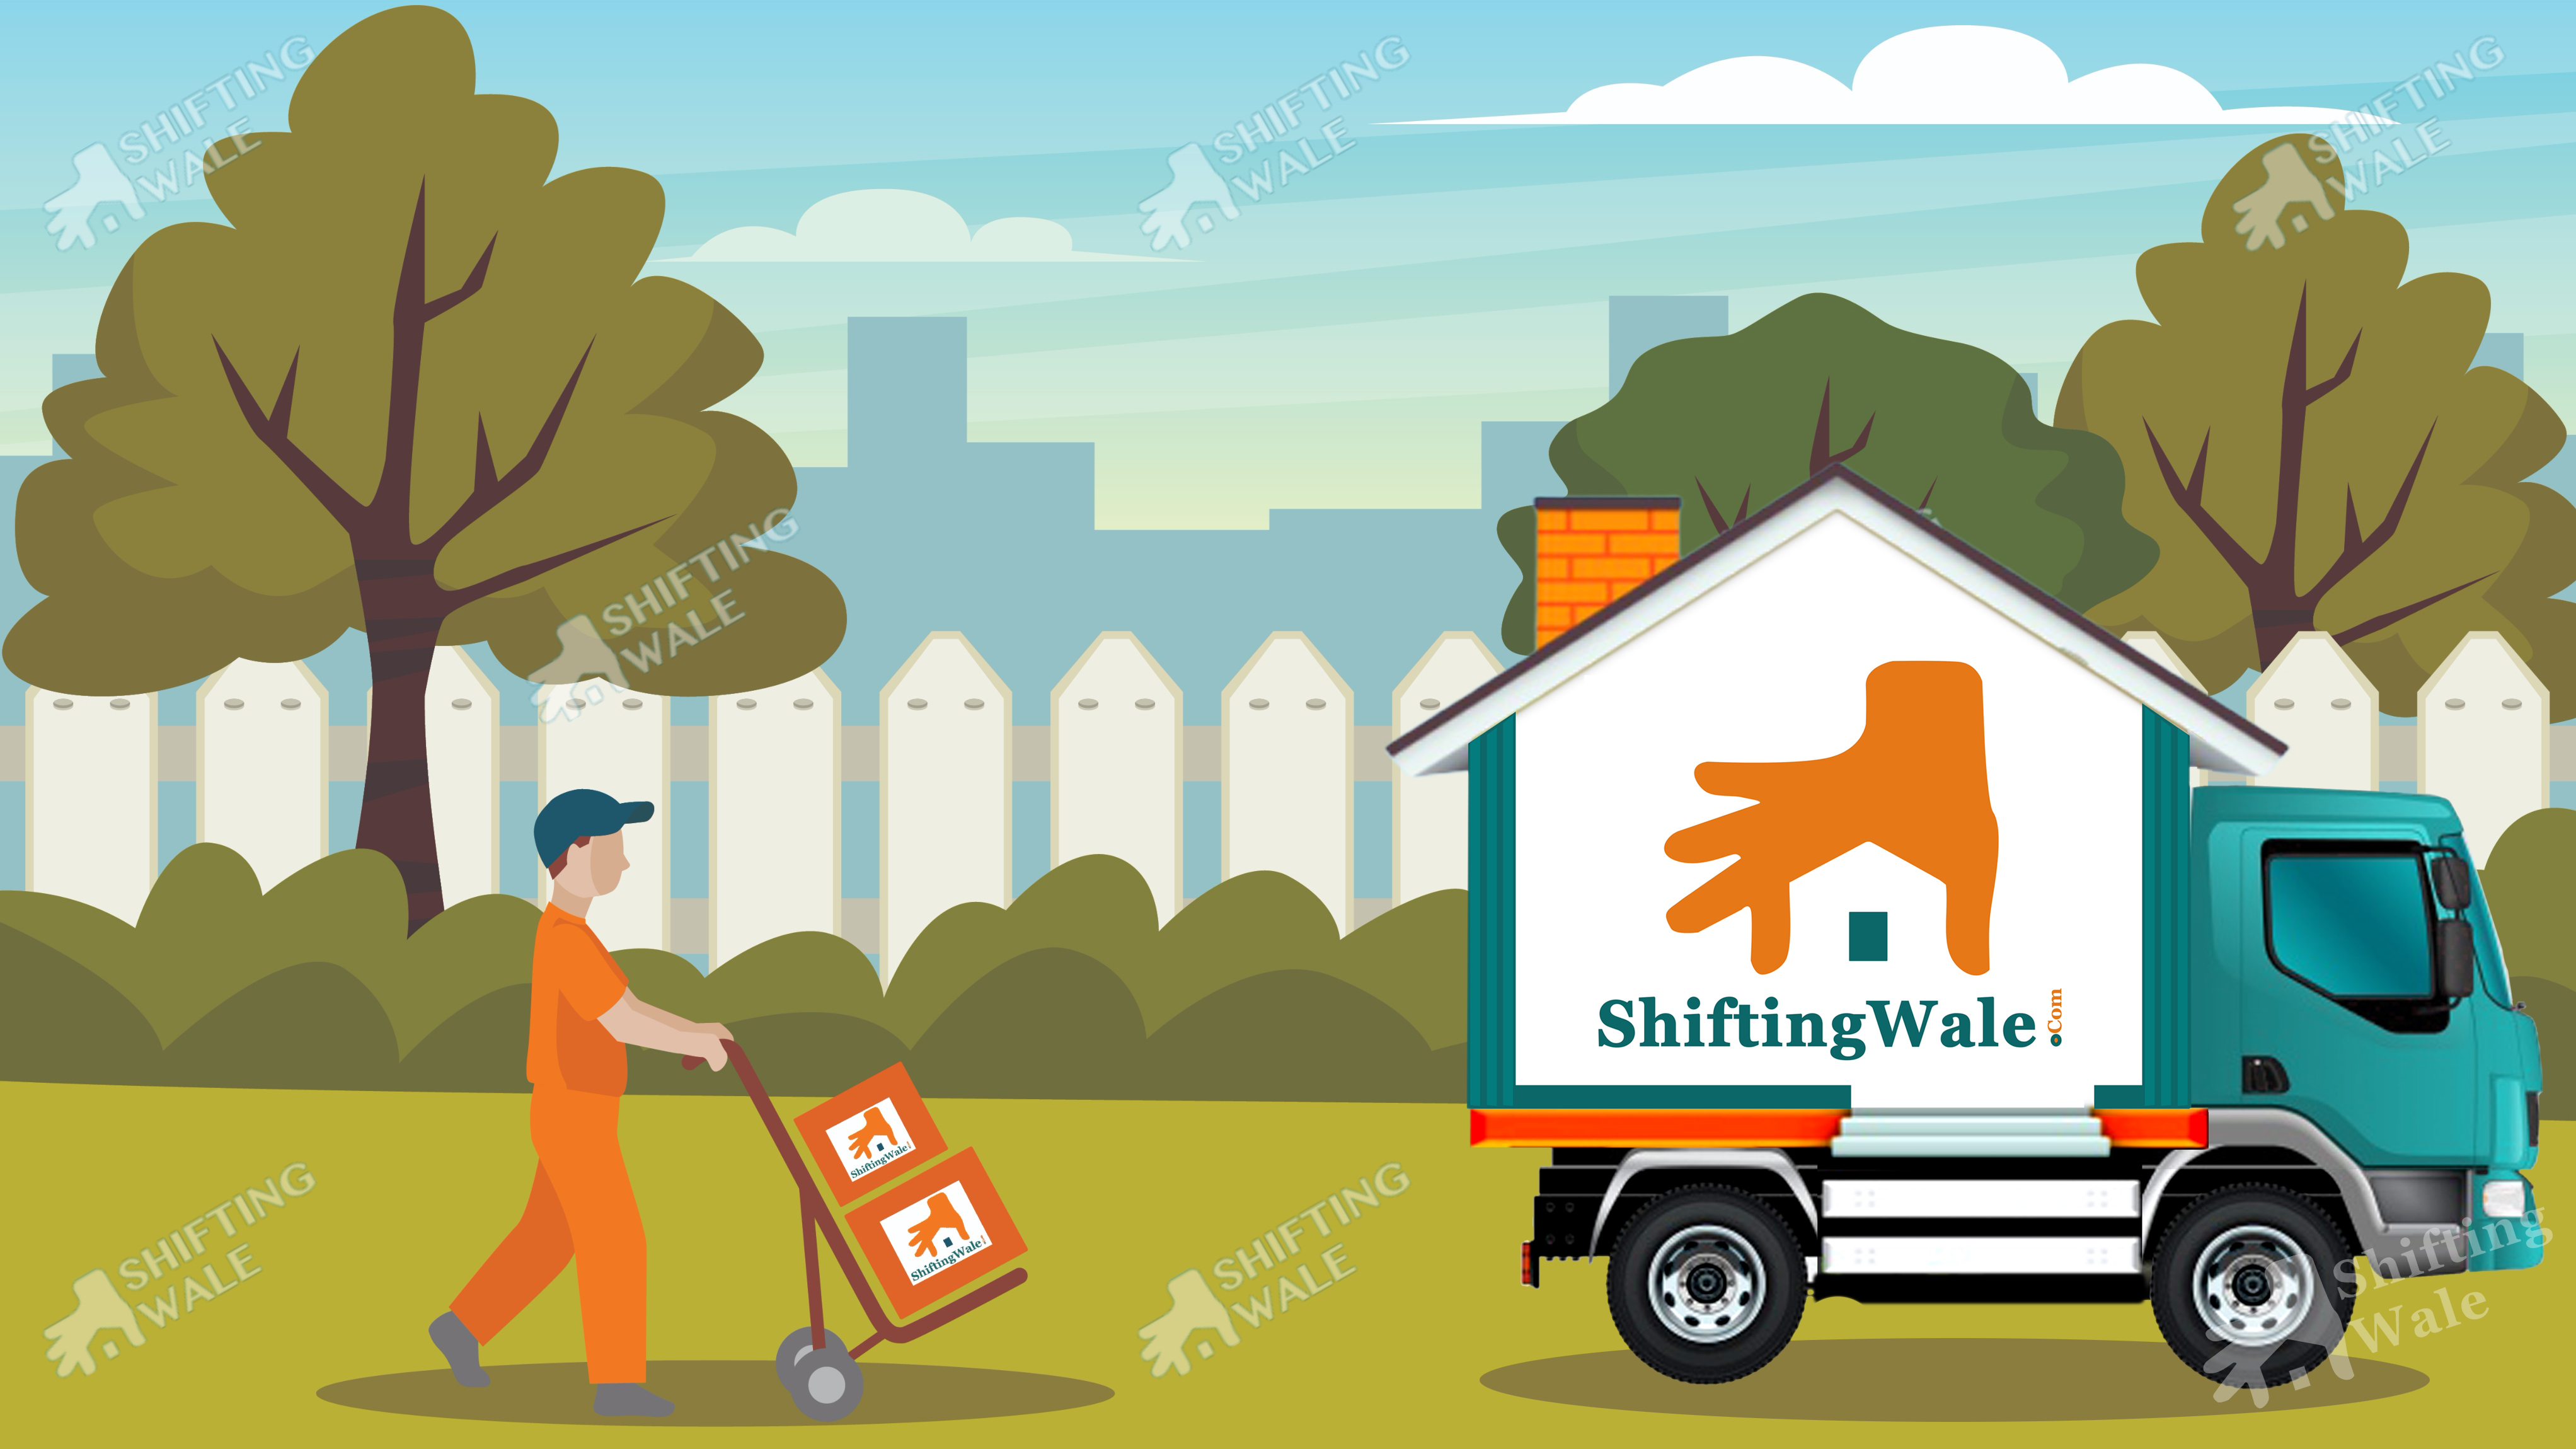 Want Packers and Movers for Household Goods Car From Delhi Noida Ghaziabad Gurgaon to Siliguri Gangtok Sikkim